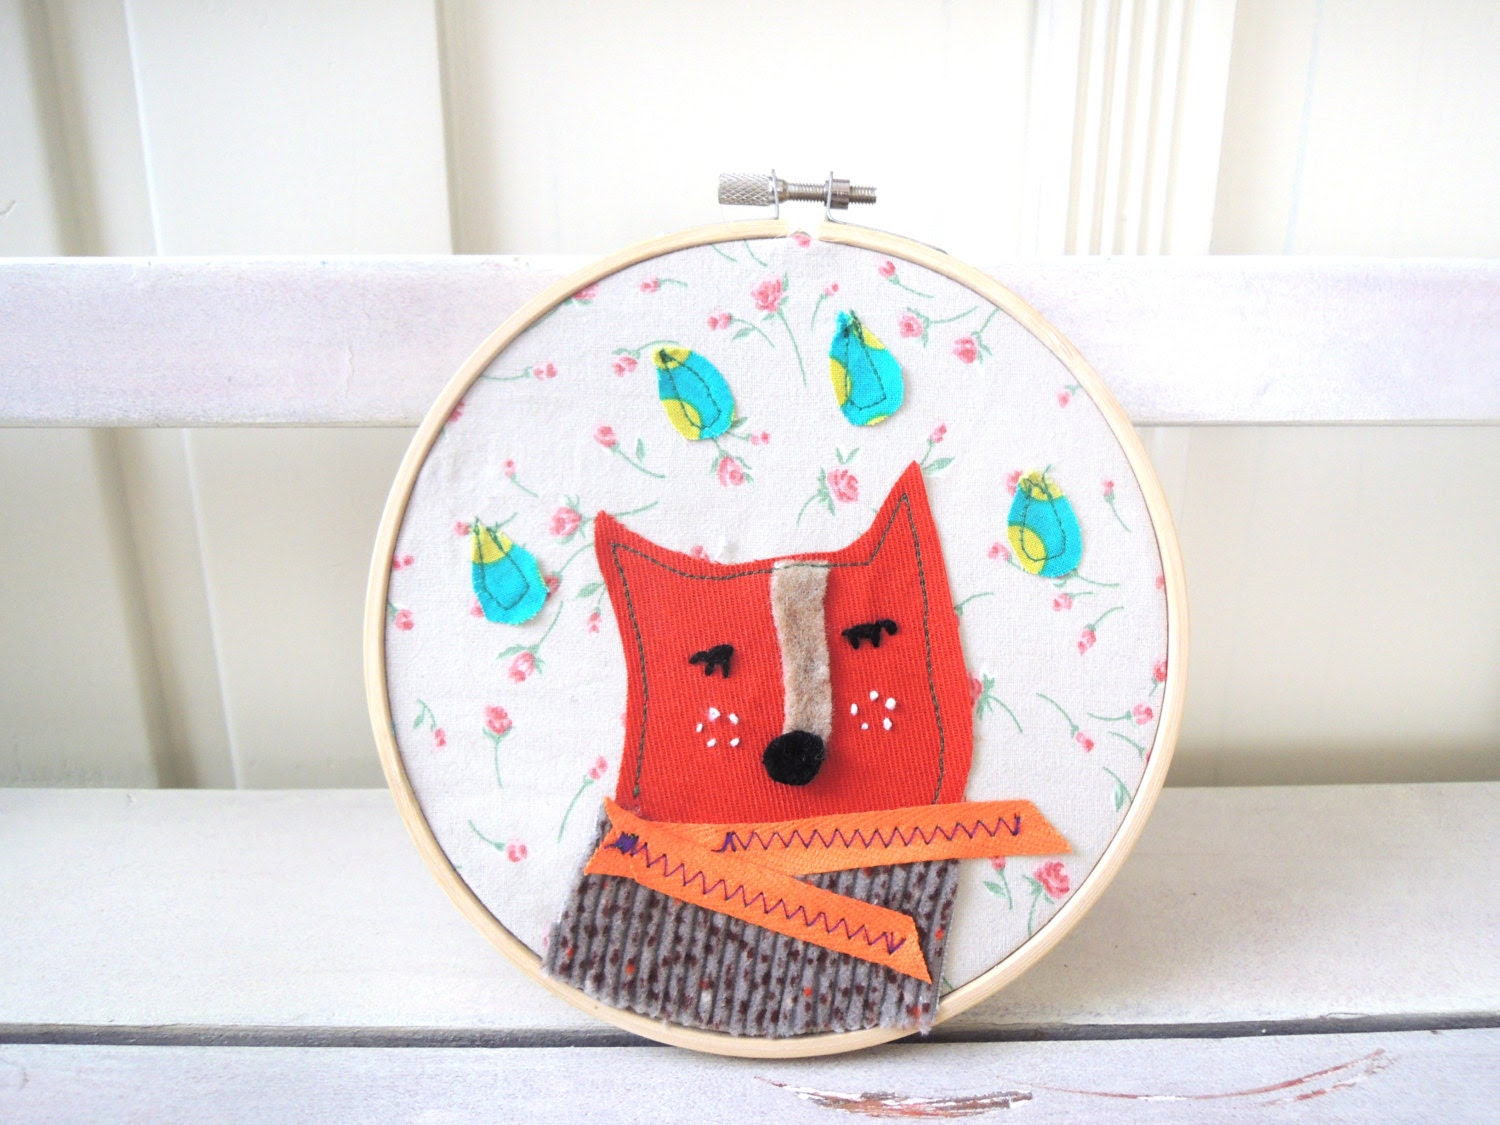 Hand Embroidery Hoop Art / 6 inch Hoop Home Decor - Nursery decor Orange Red Fox with a winter scarf - ILoveMoonlight